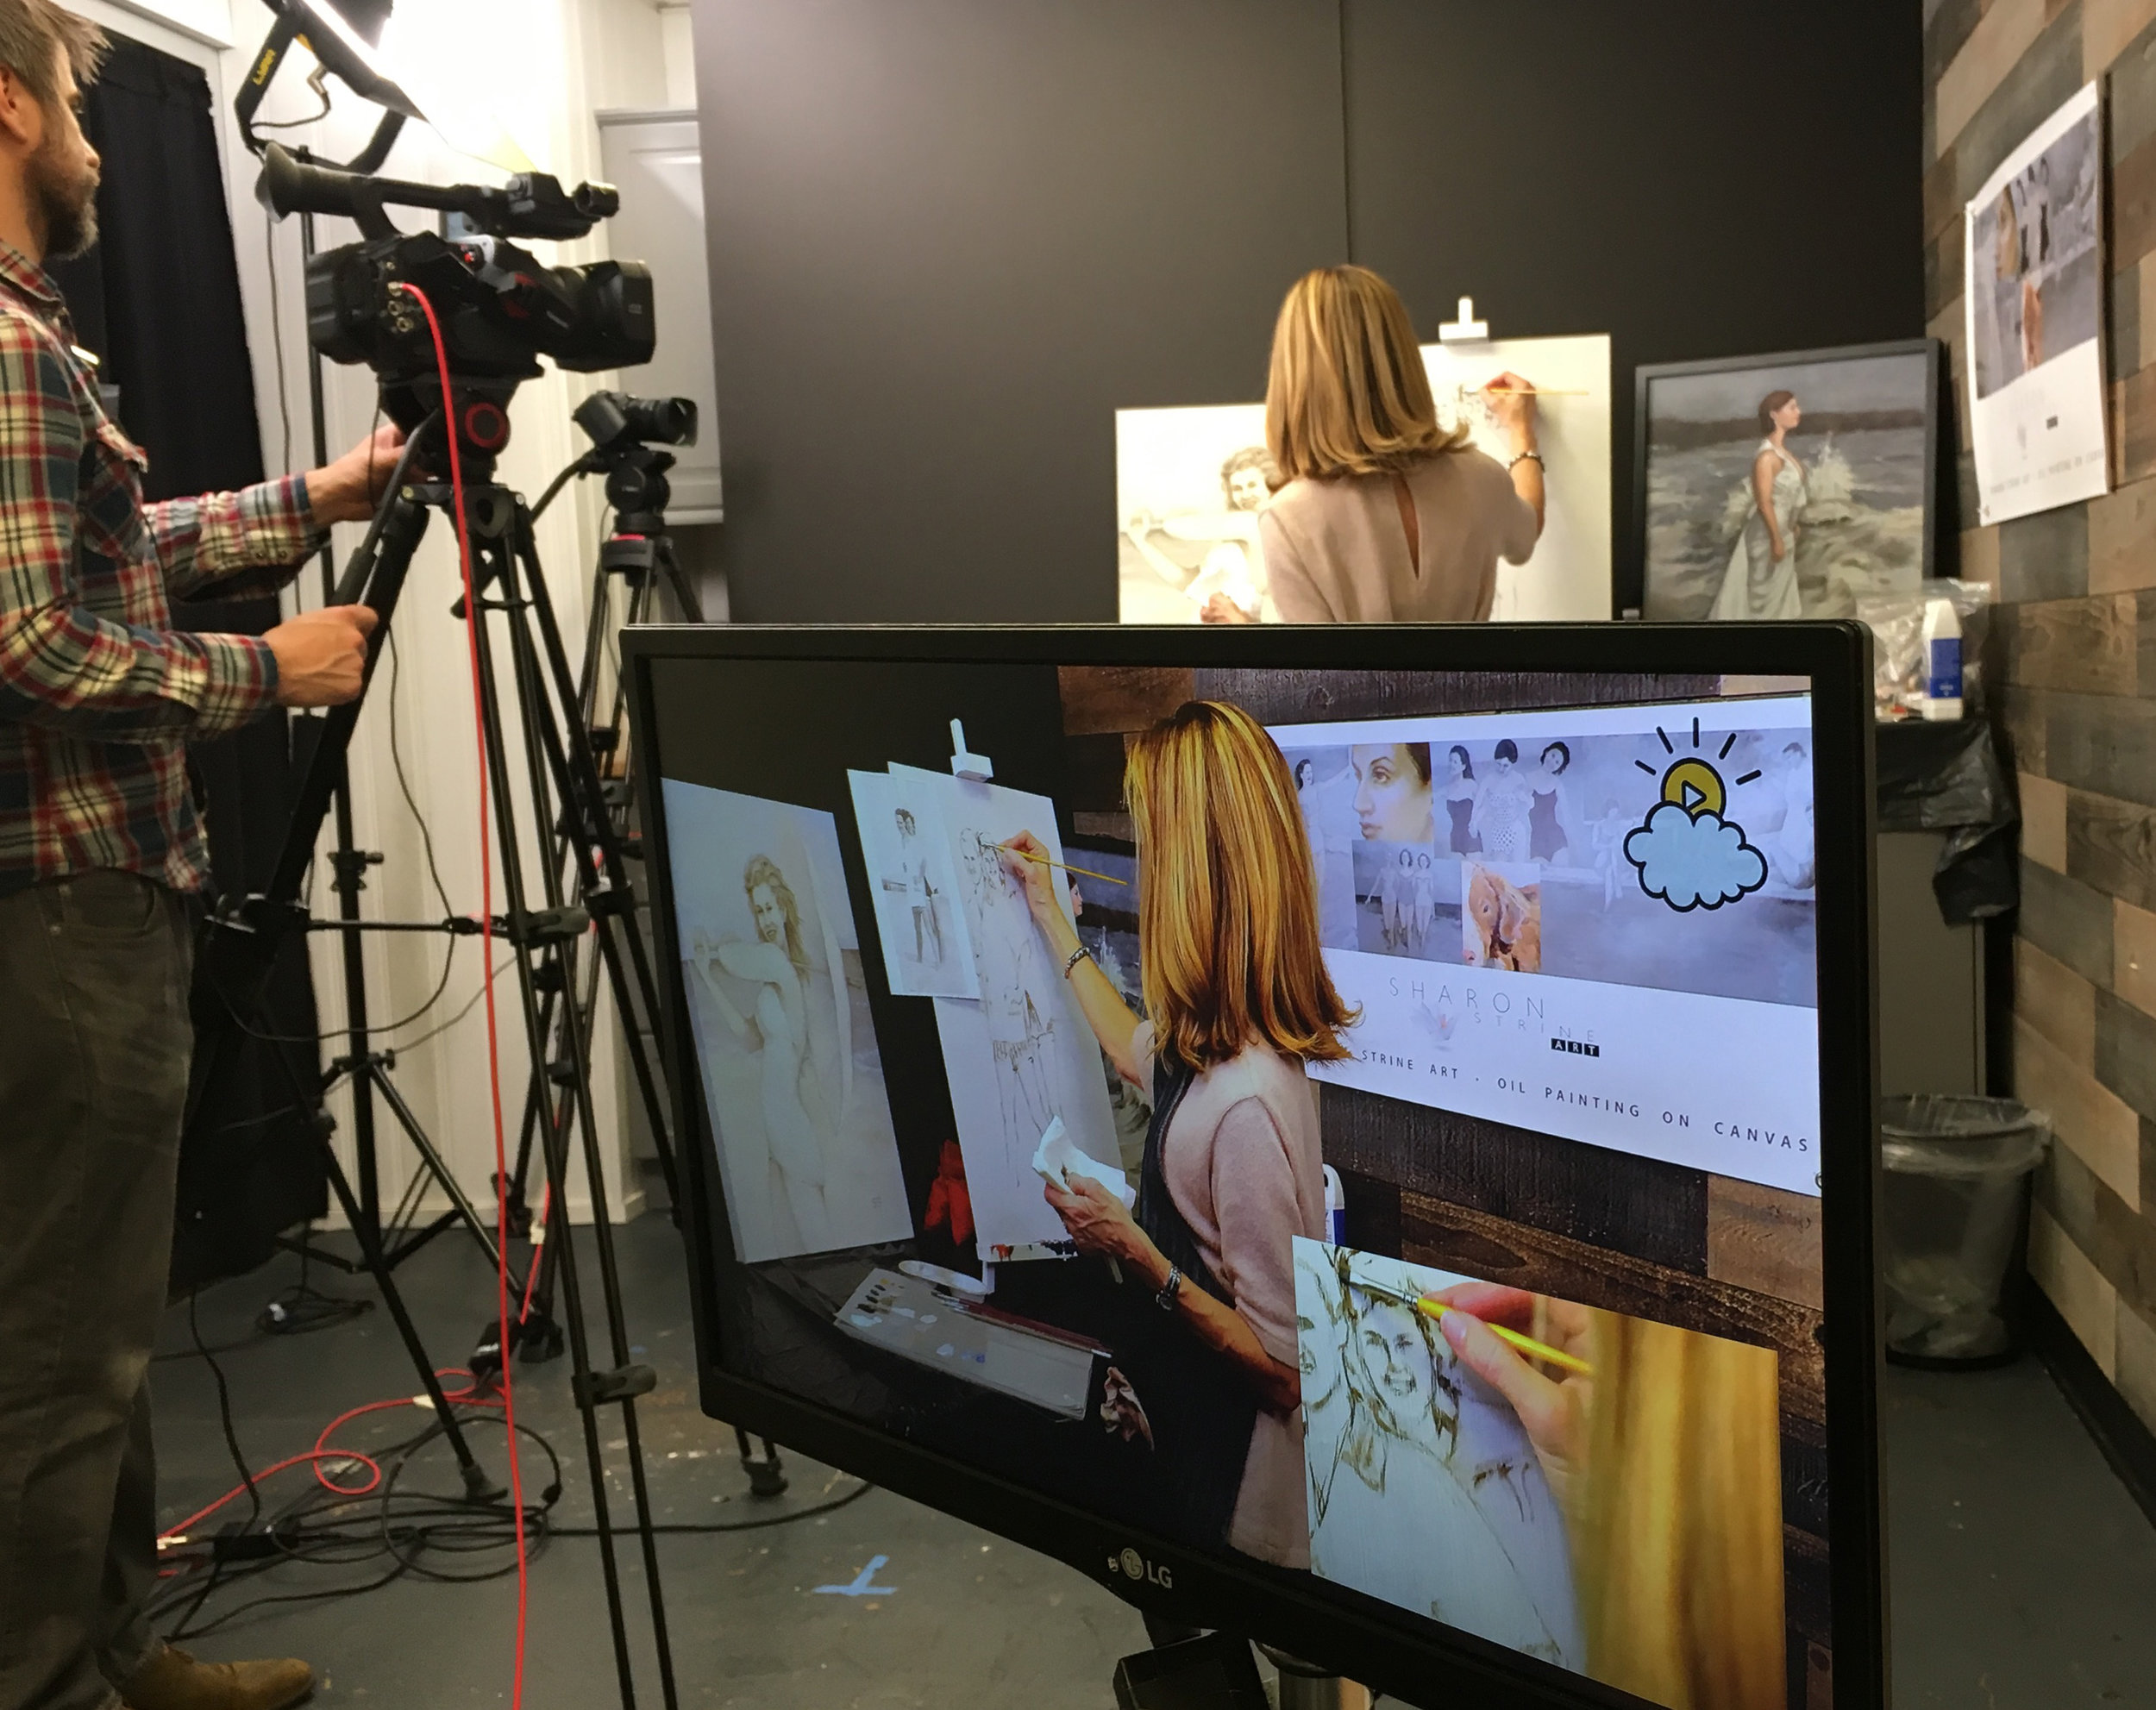 Painting at the LittleThings broadcasting studio in New York on Saturday, April 15.